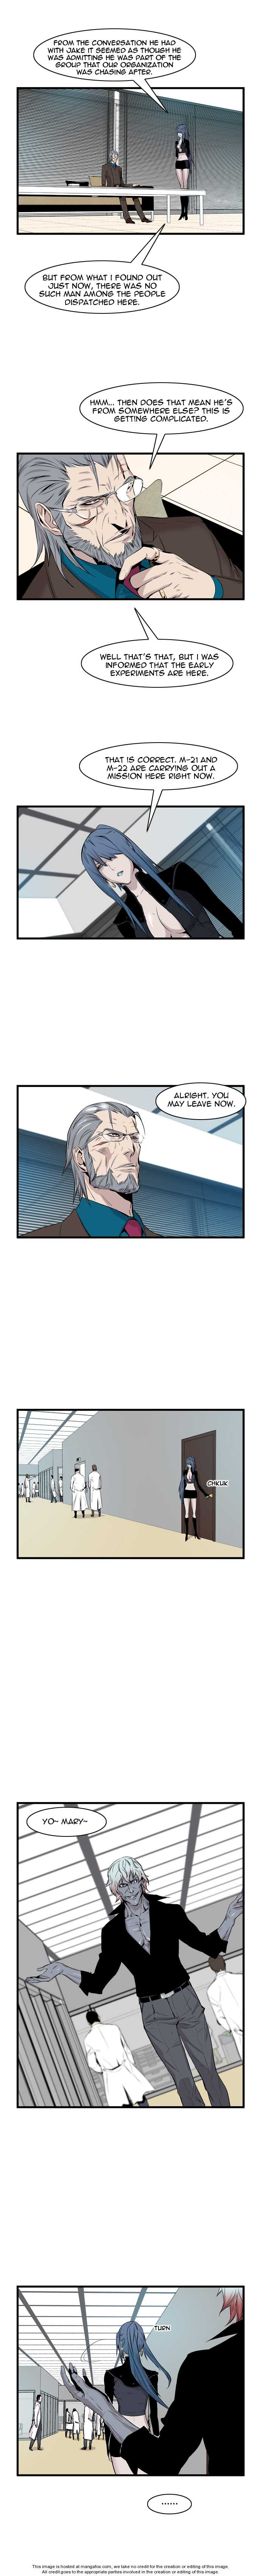 Noblesse 60 Page 2